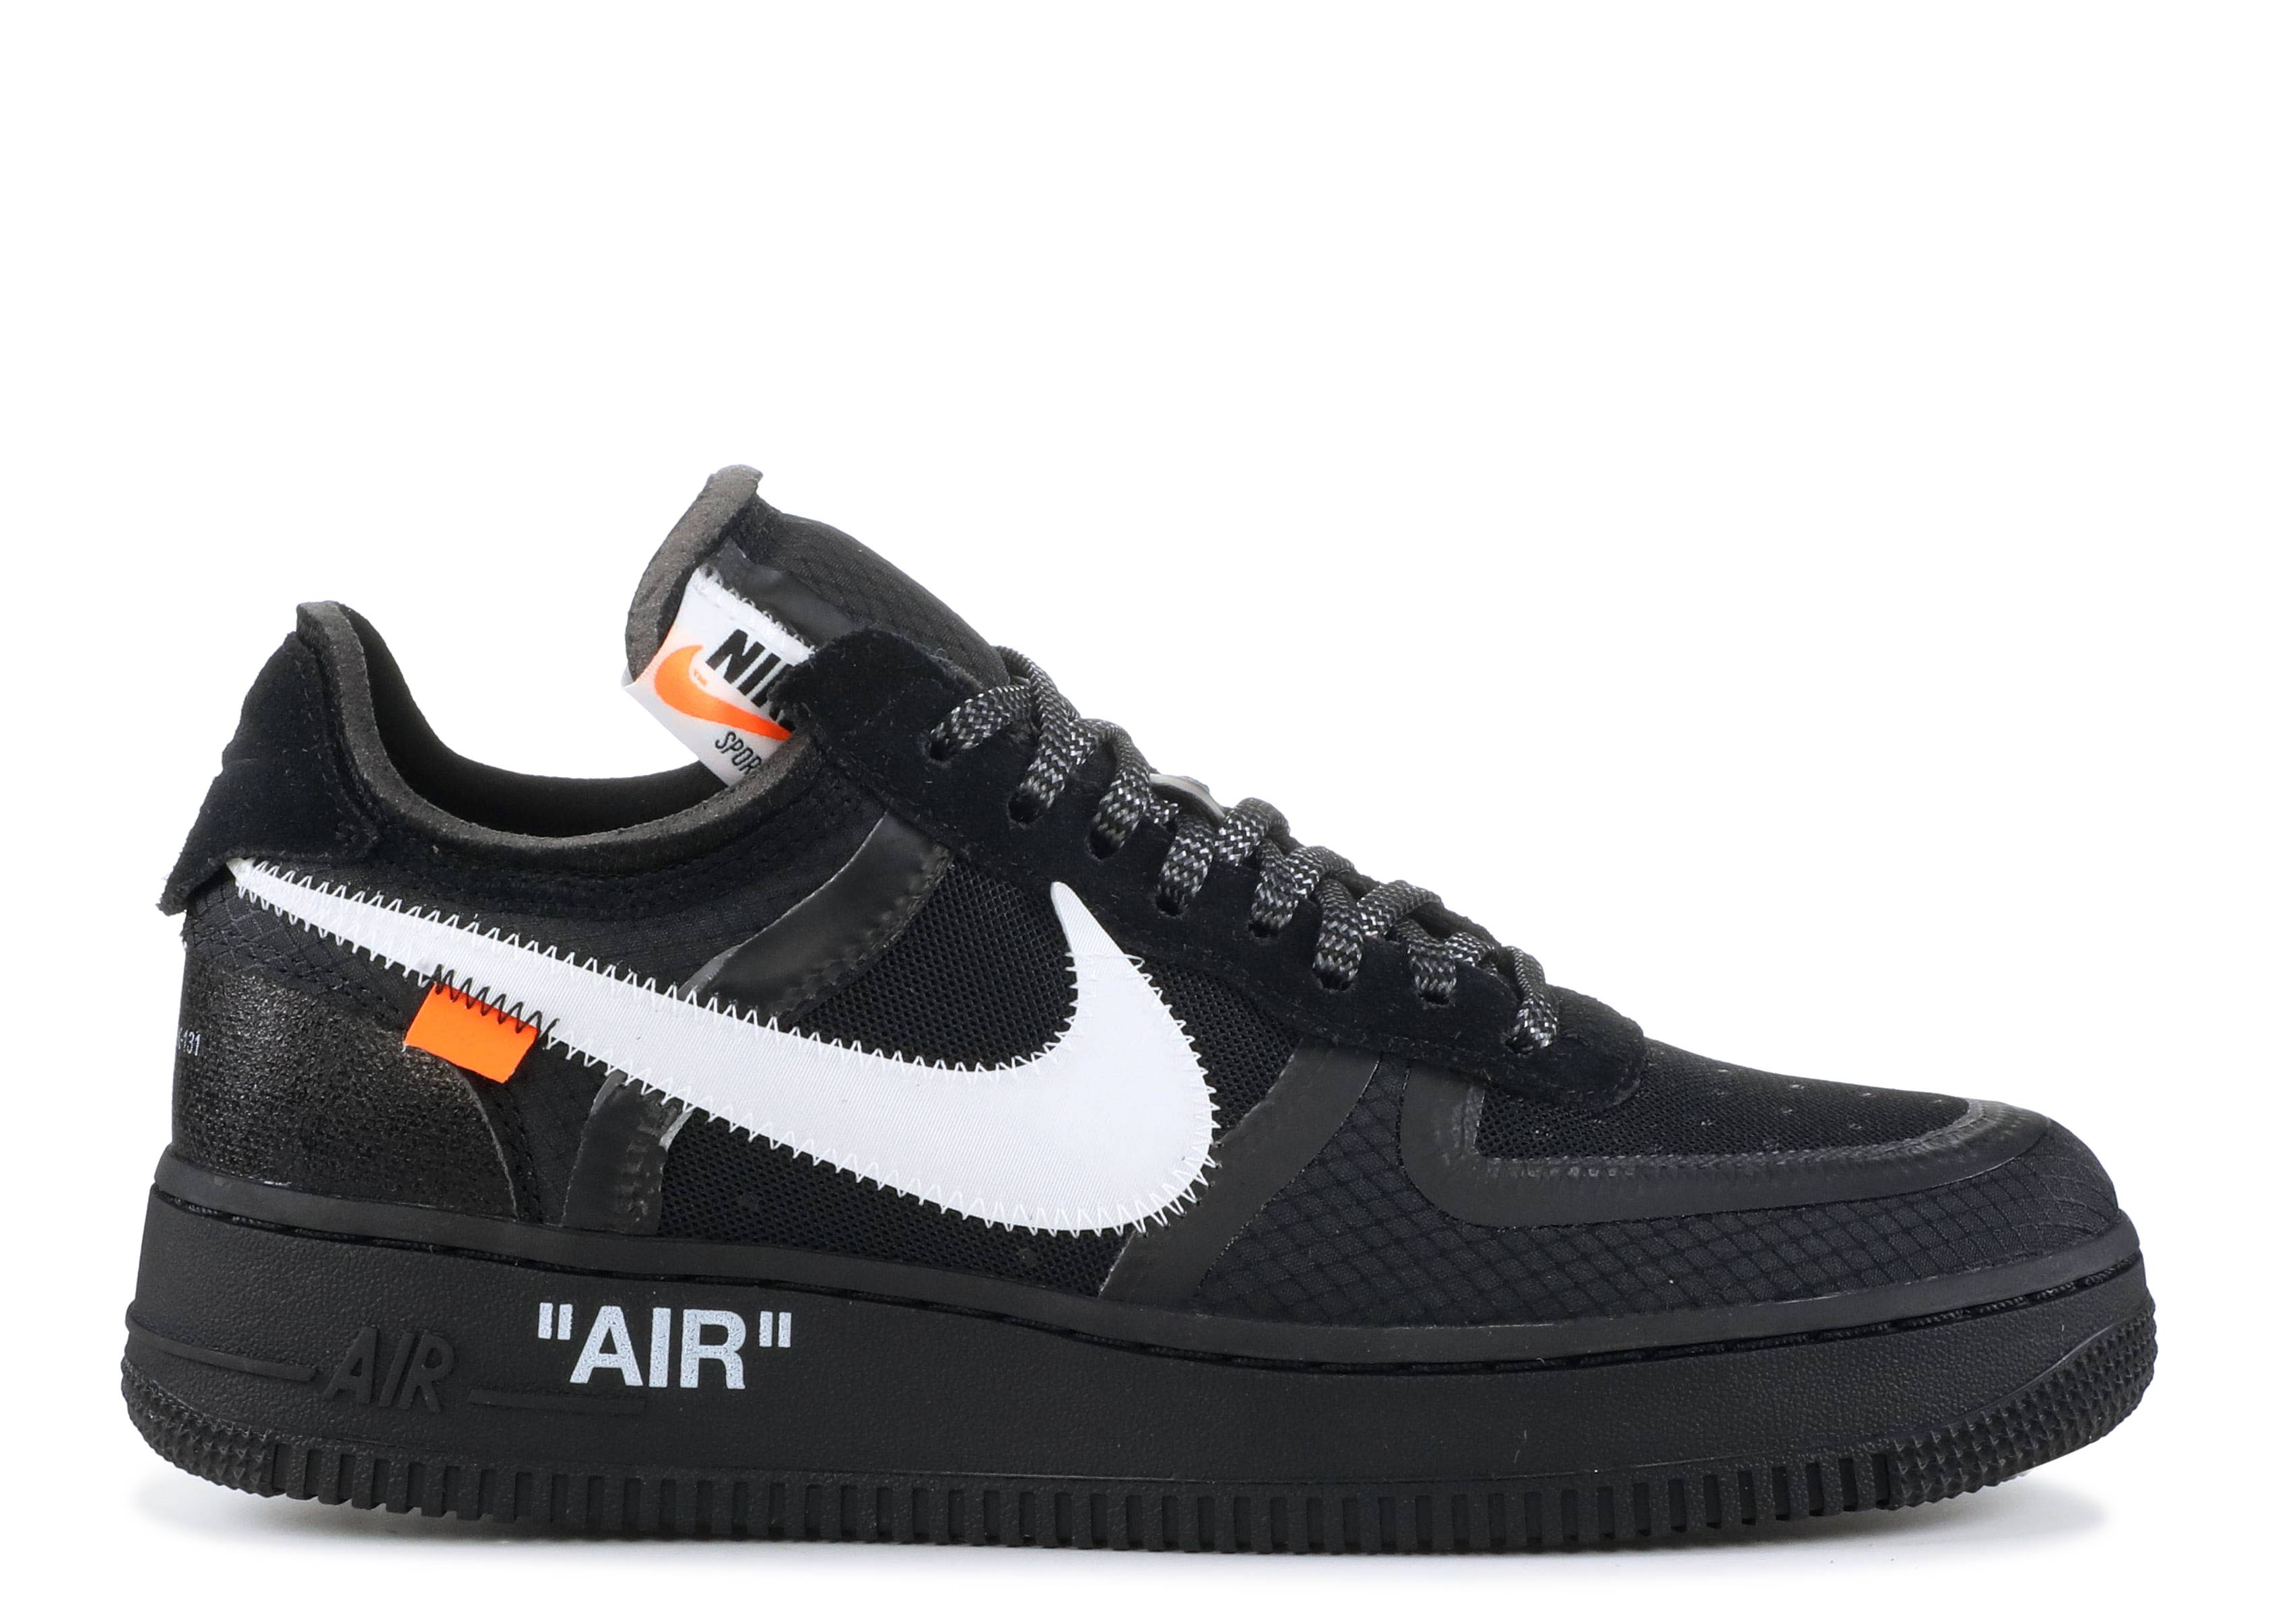 677290c48184c The 10: Nike Air Force 1 Low